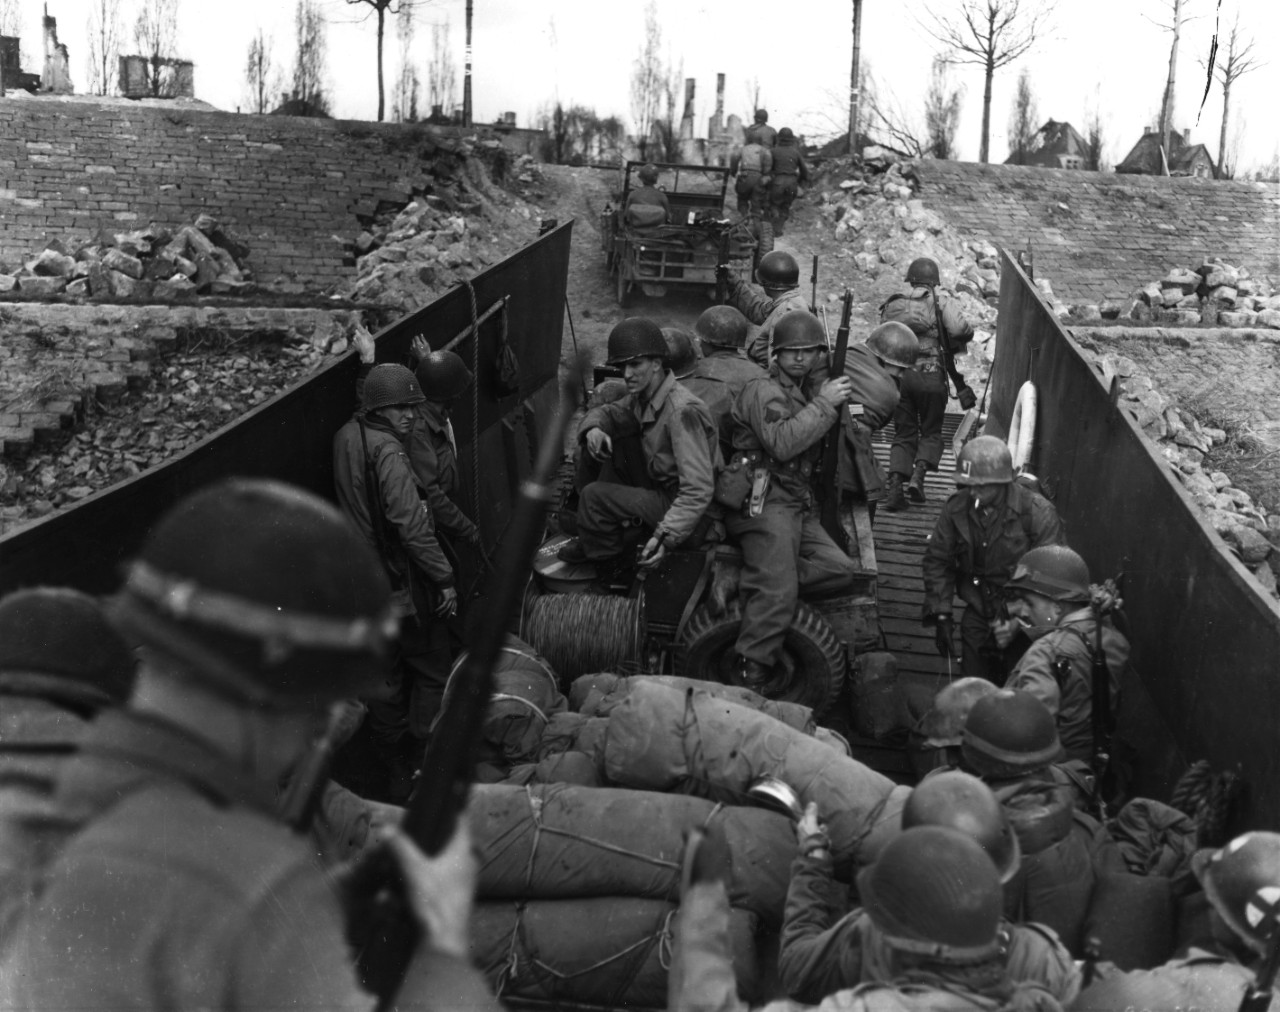 <p>Men and vehicles of the 80th Infantry Division, Third US Army, load into a landing craft prior to crossing the Rhine River, Germany, 29 March 1945. Note M-1 Garand rifle and belt gear of man in center, including TL-29 knife, and M-1 carbines carried by other men.</p>